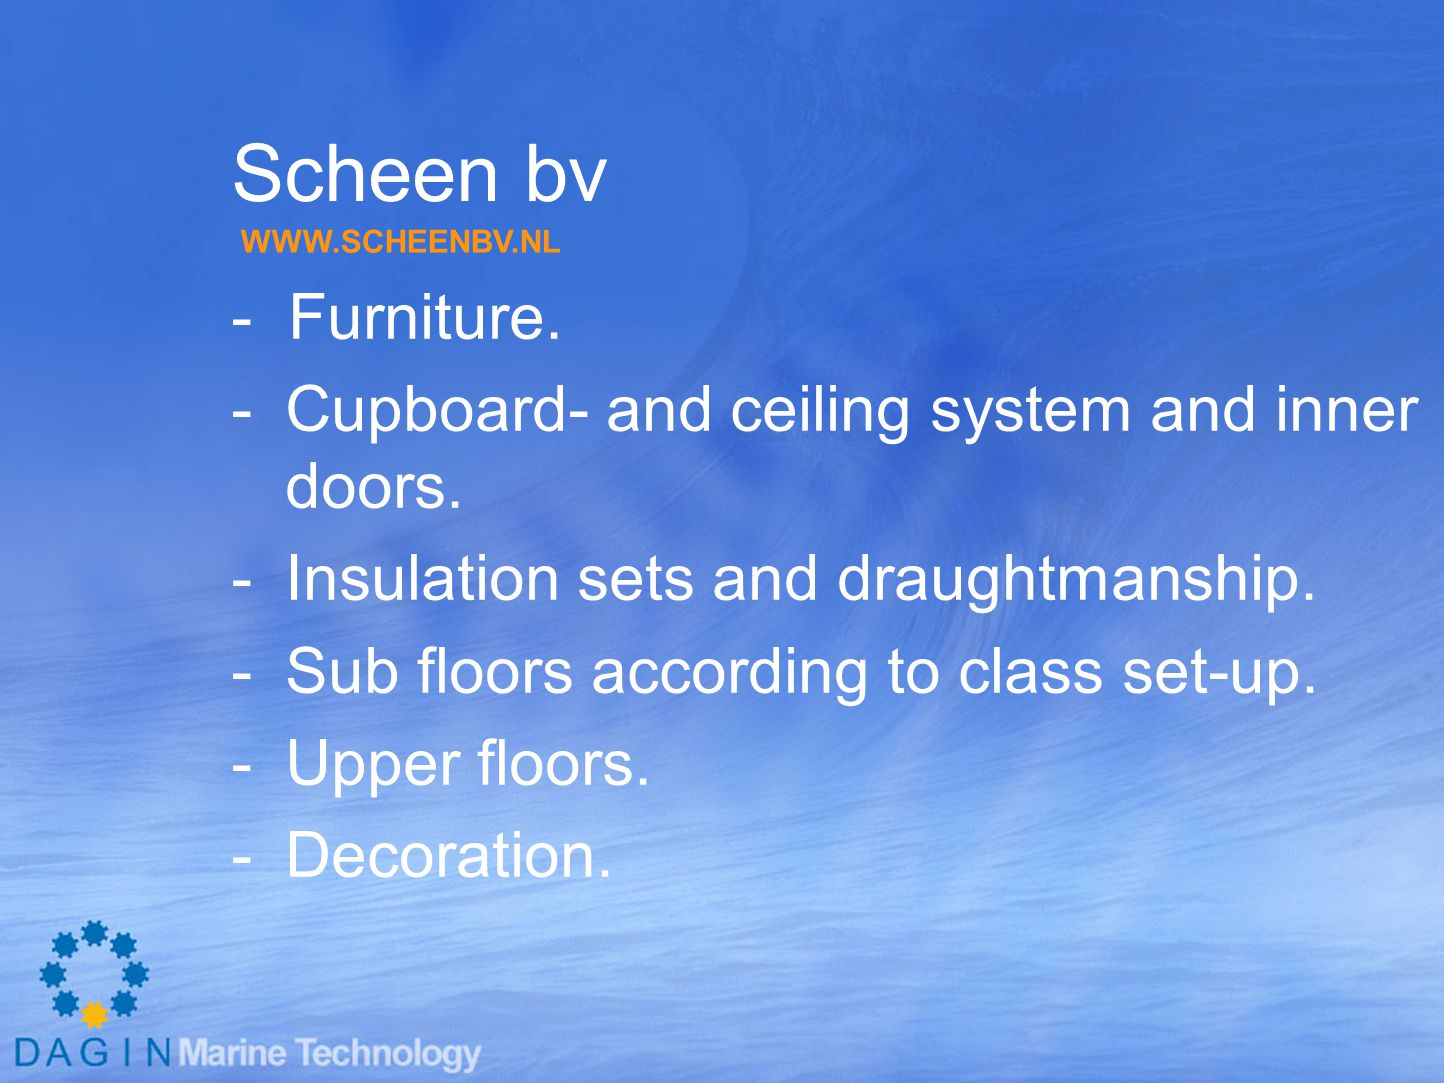 Scheen bv - Furniture. Cupboard- and ceiling system and inner doors.